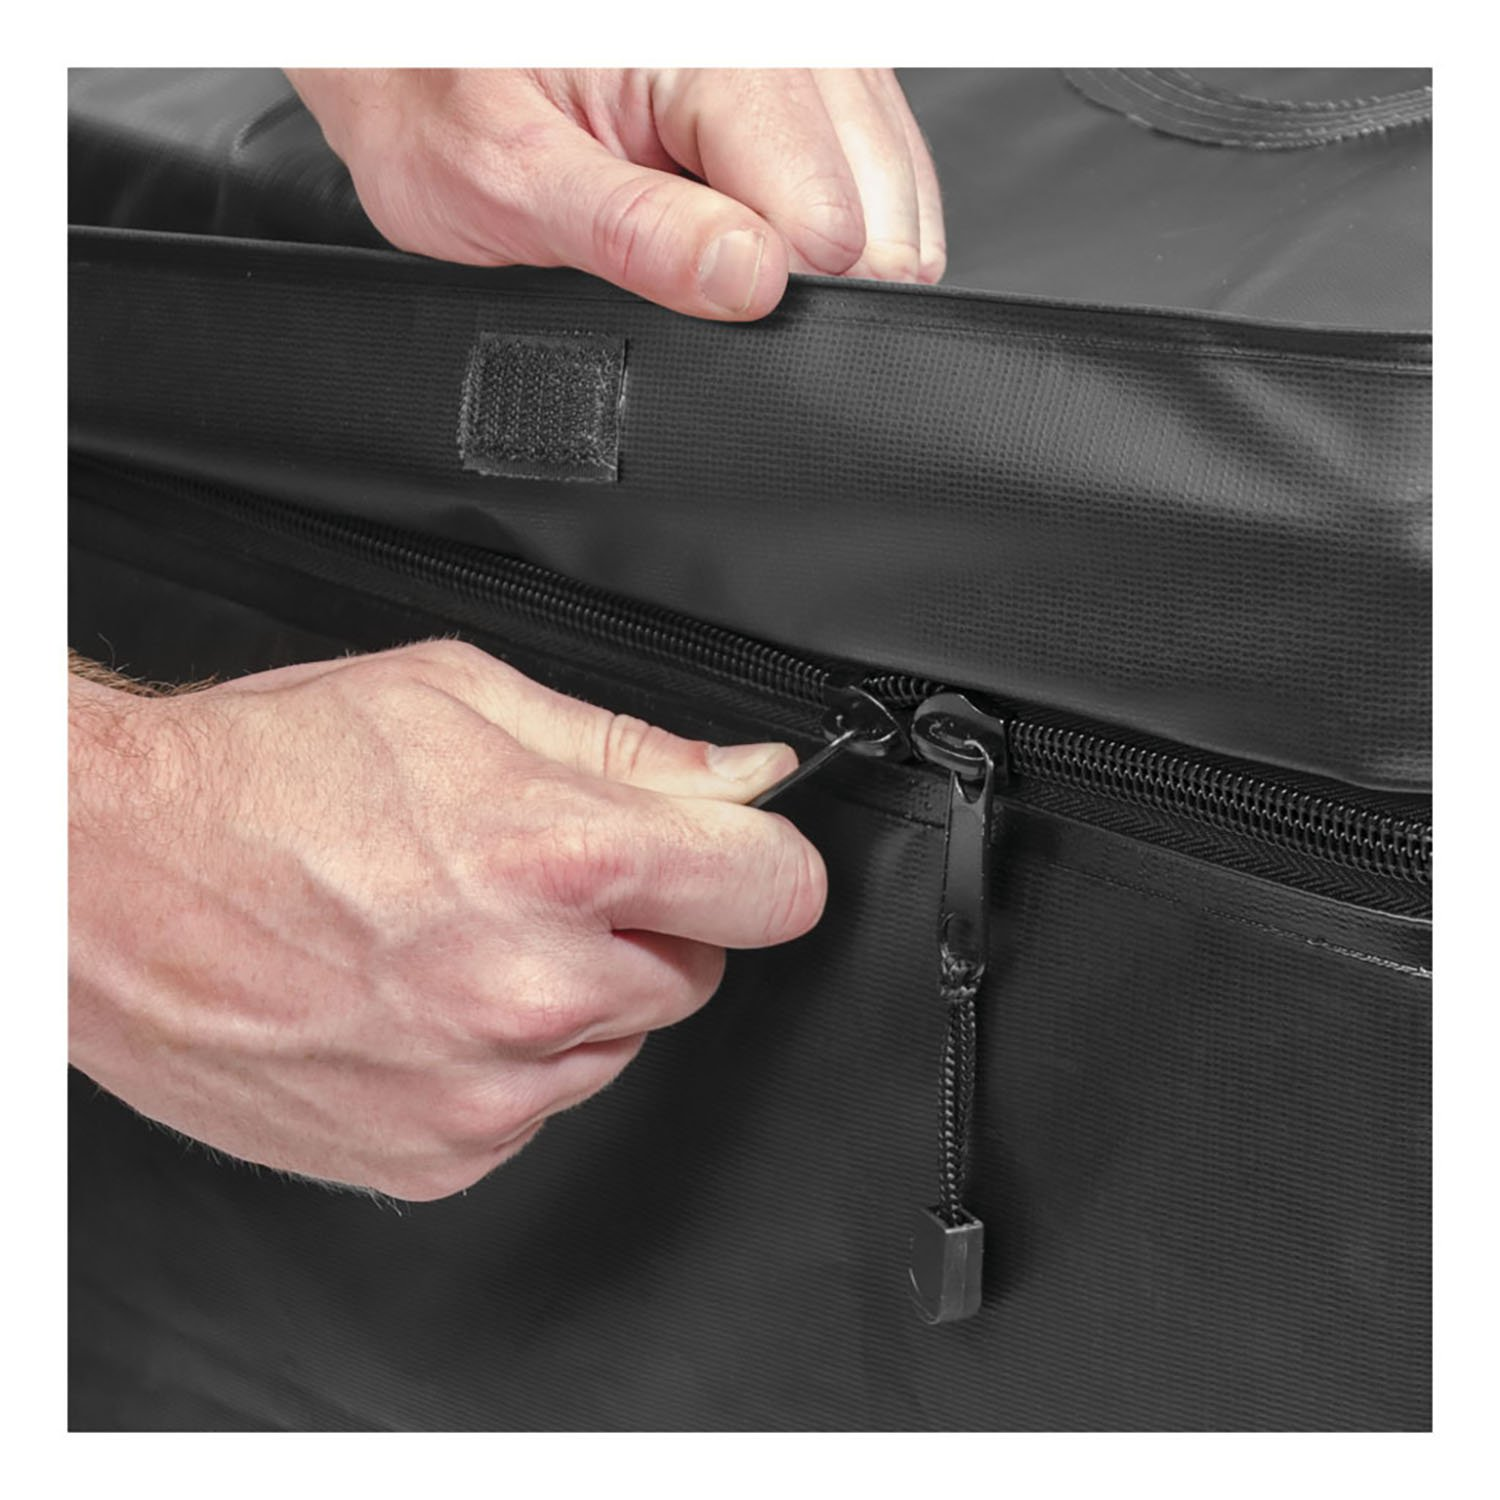 """Curt Manufacturing Cur18221 59"""" x 34"""" x 18In, 21 Cubic Feet, Rooftop Carrier Bag"""